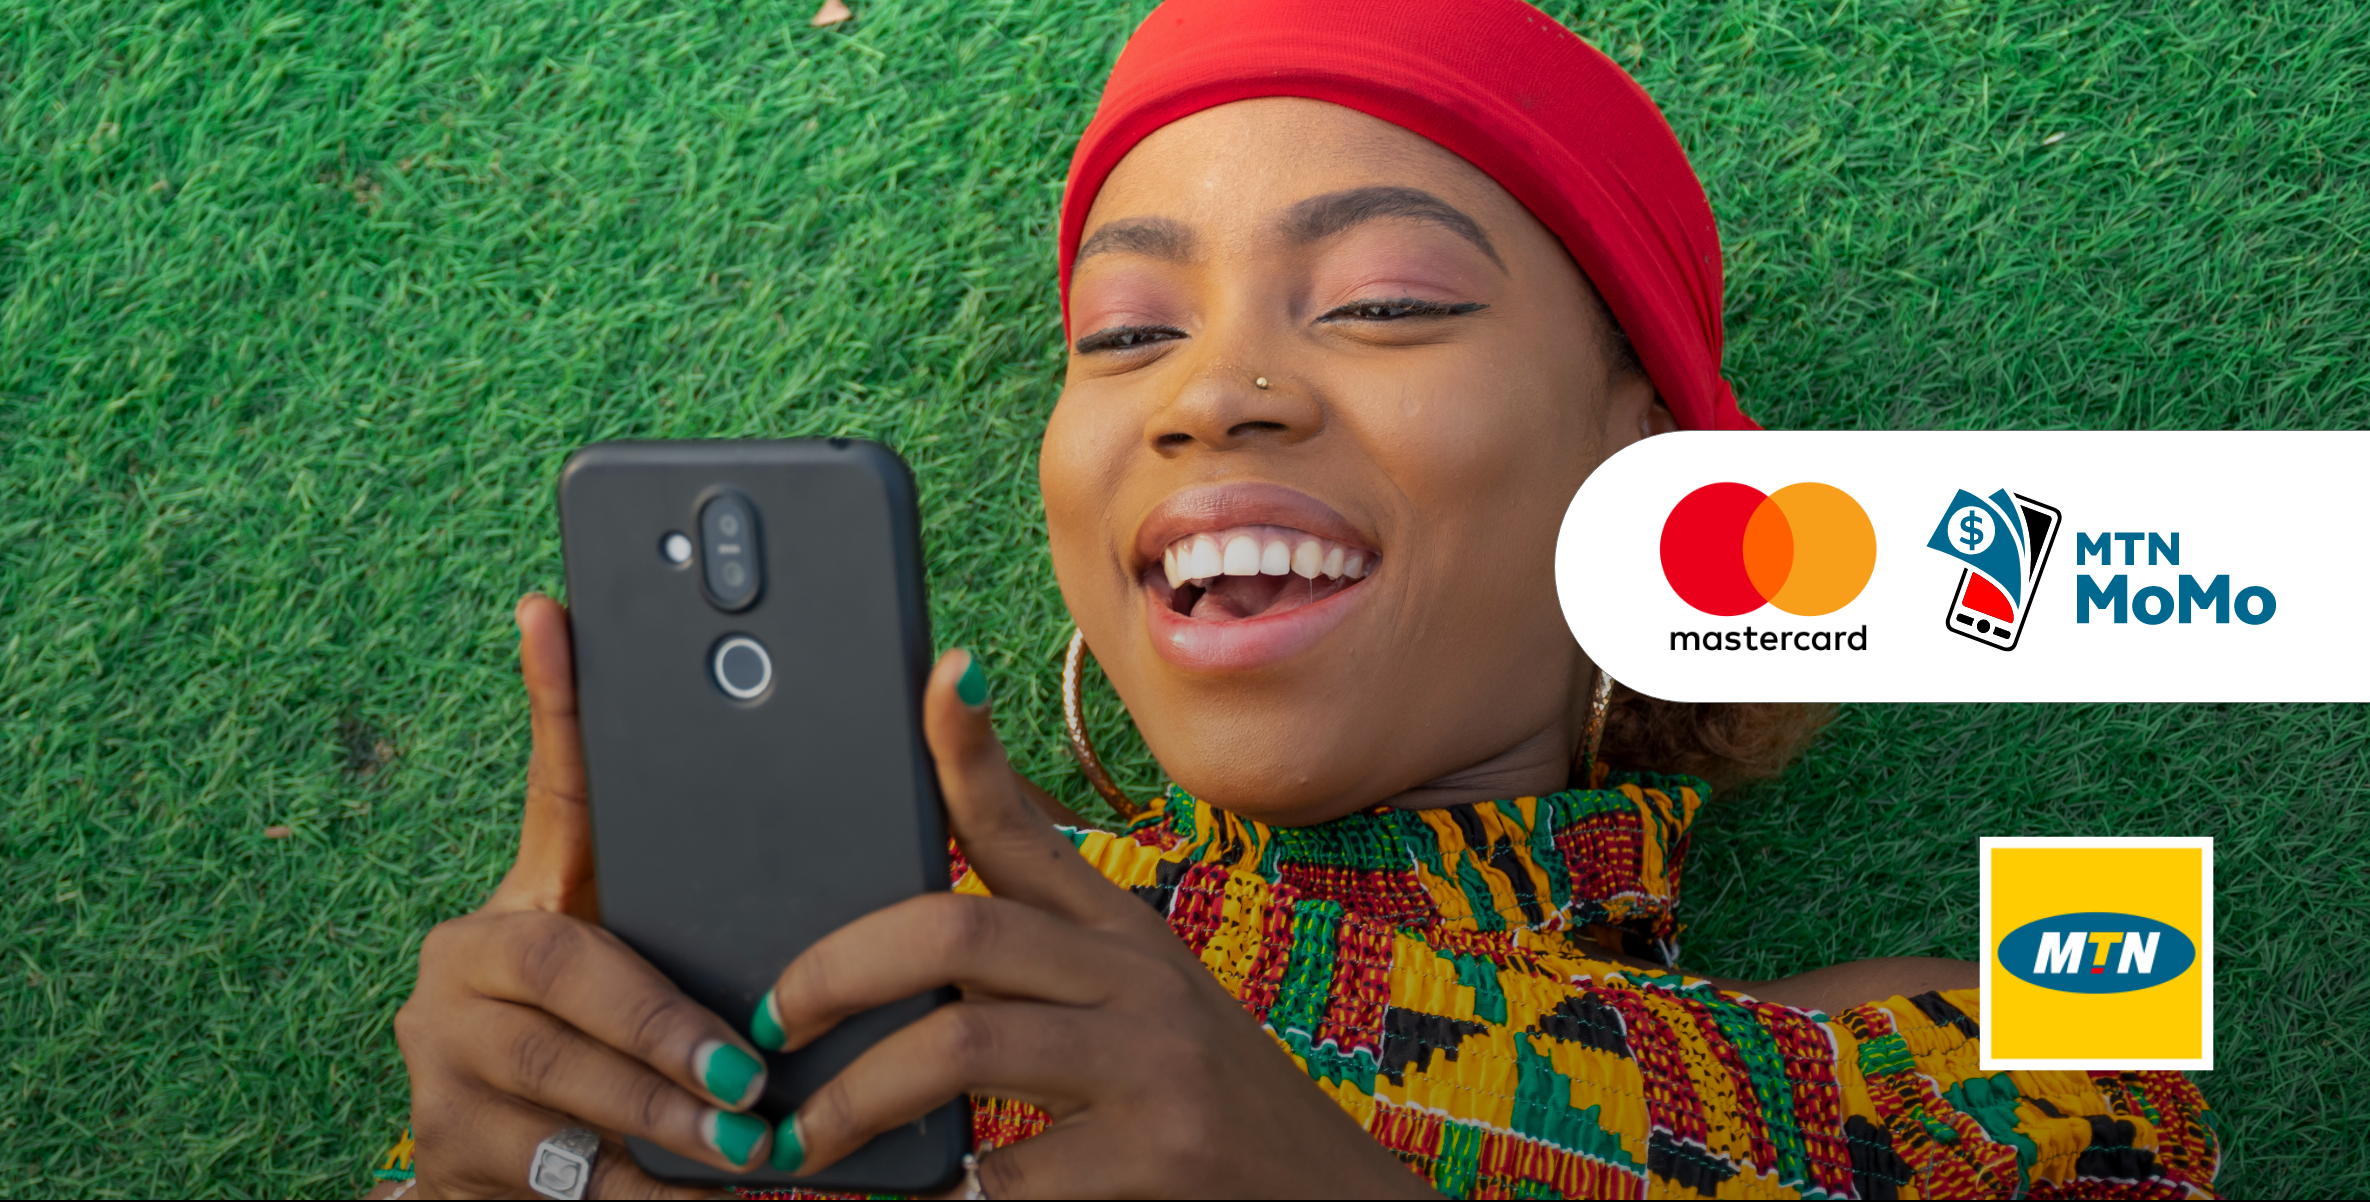 Mastercard and MTN empower millions of consumers in Africa to make payments on global platforms